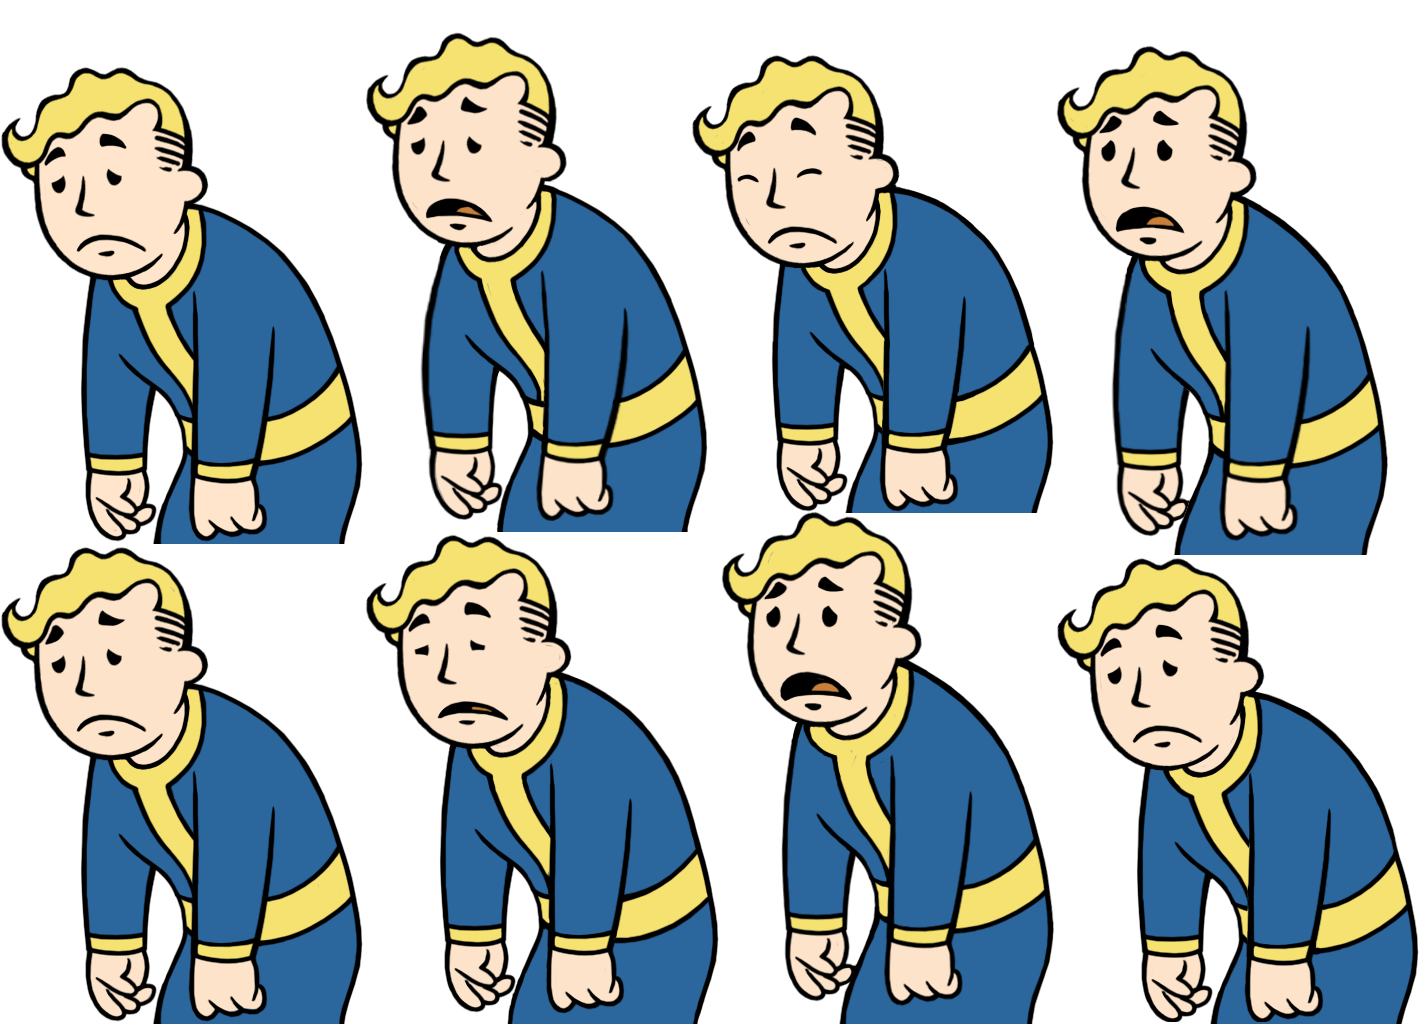 Guy taking notes png. Image vaultboy animationshappynesslow fallout